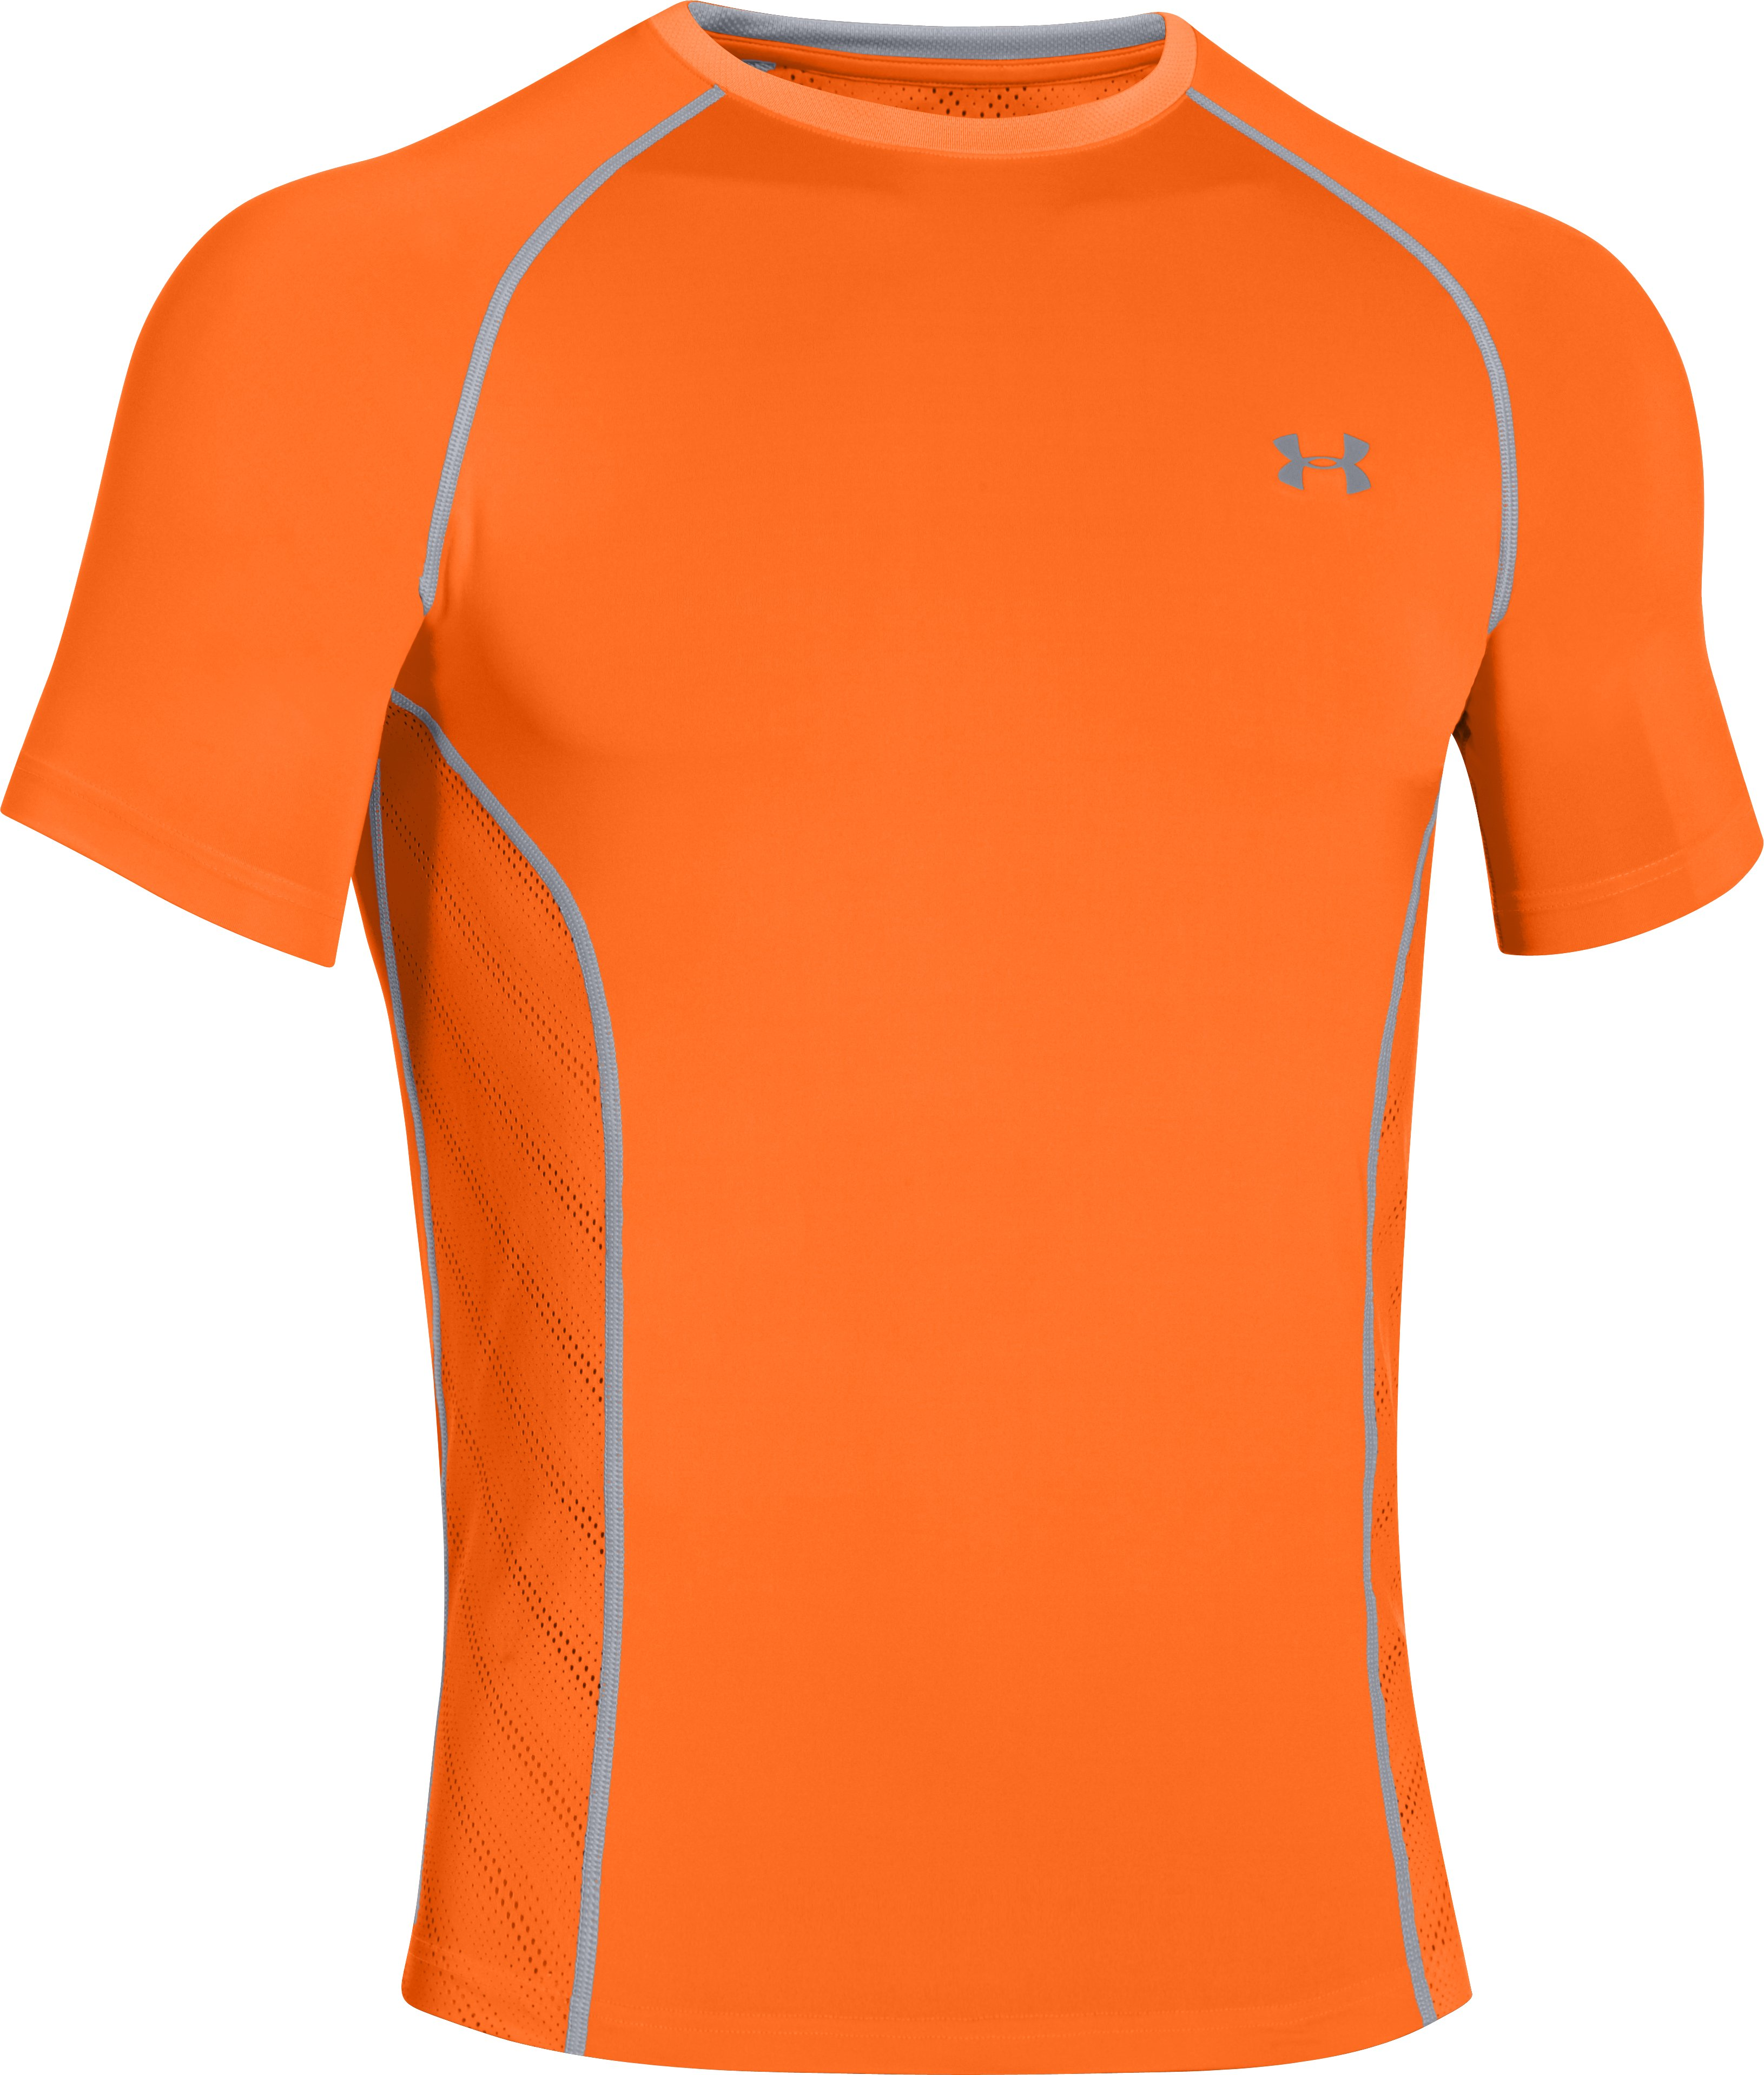 Men's HeatGear® Sonic ArmourVent™ Short Sleeve, Blaze Orange